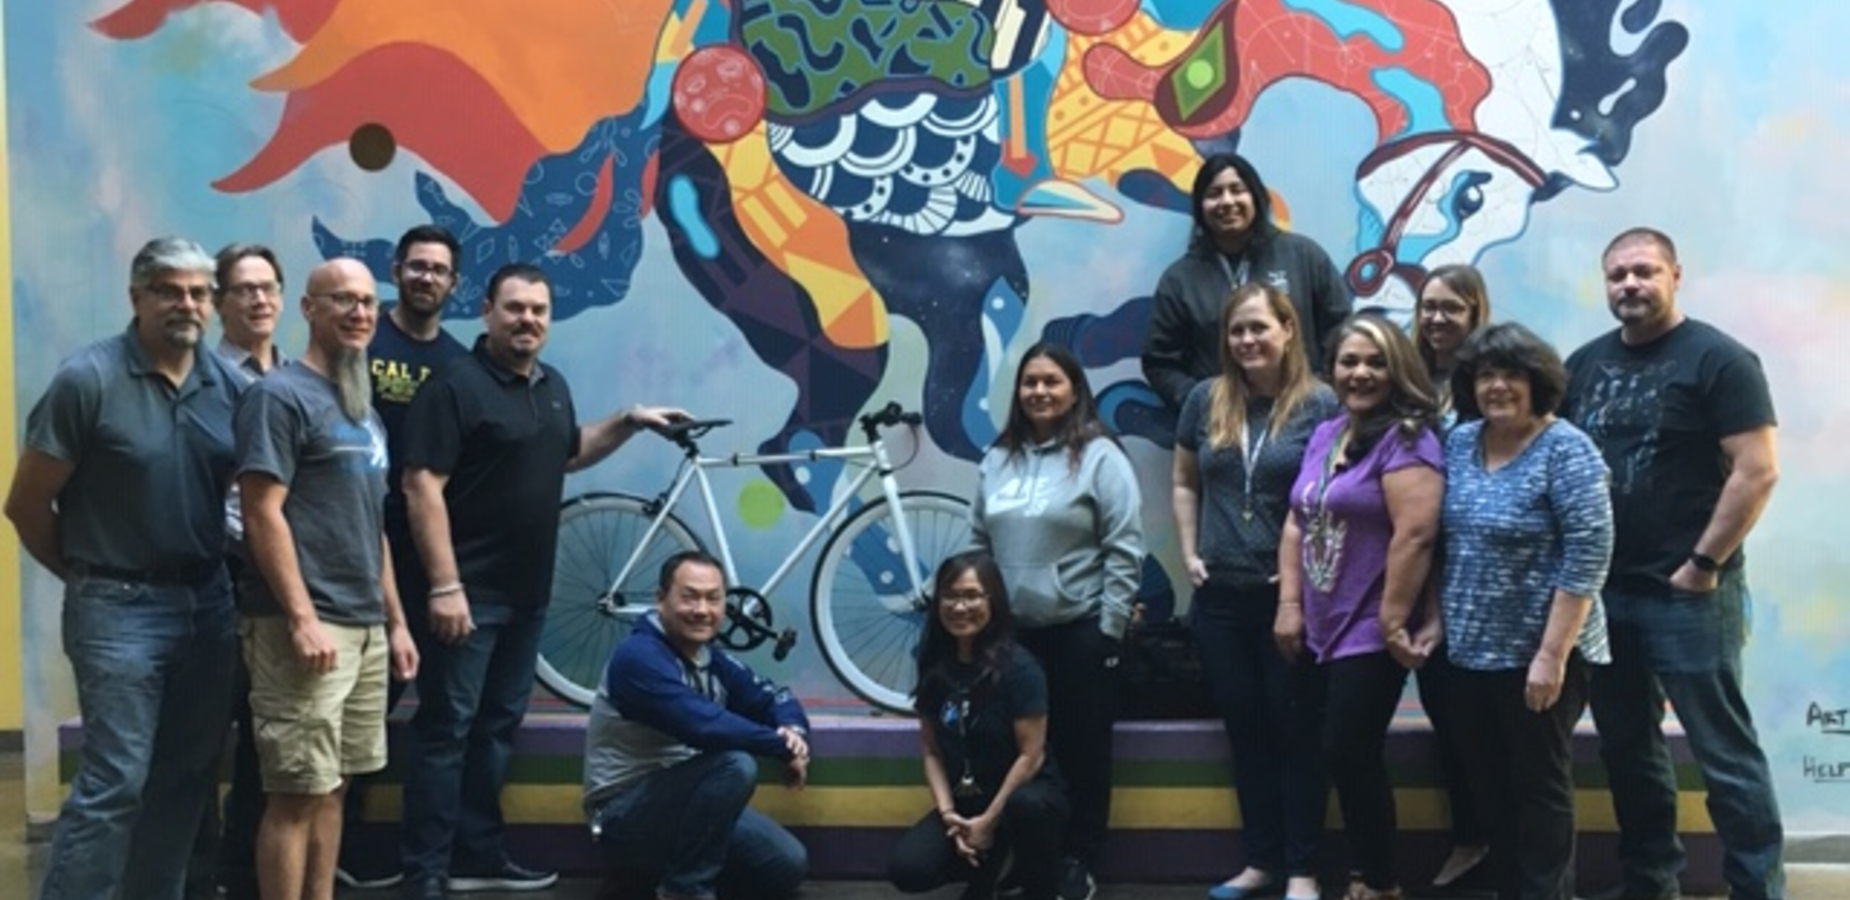 Bobby's Bike Shop is the Best! - Bobby's Bike Shop is located in Pomona and they just donated a bicycle to Village Academy High School. VAHS Staff worked to assemble the bike for one lucky student at the end of the year. #proud2bepusd http://edl.io/n1119306